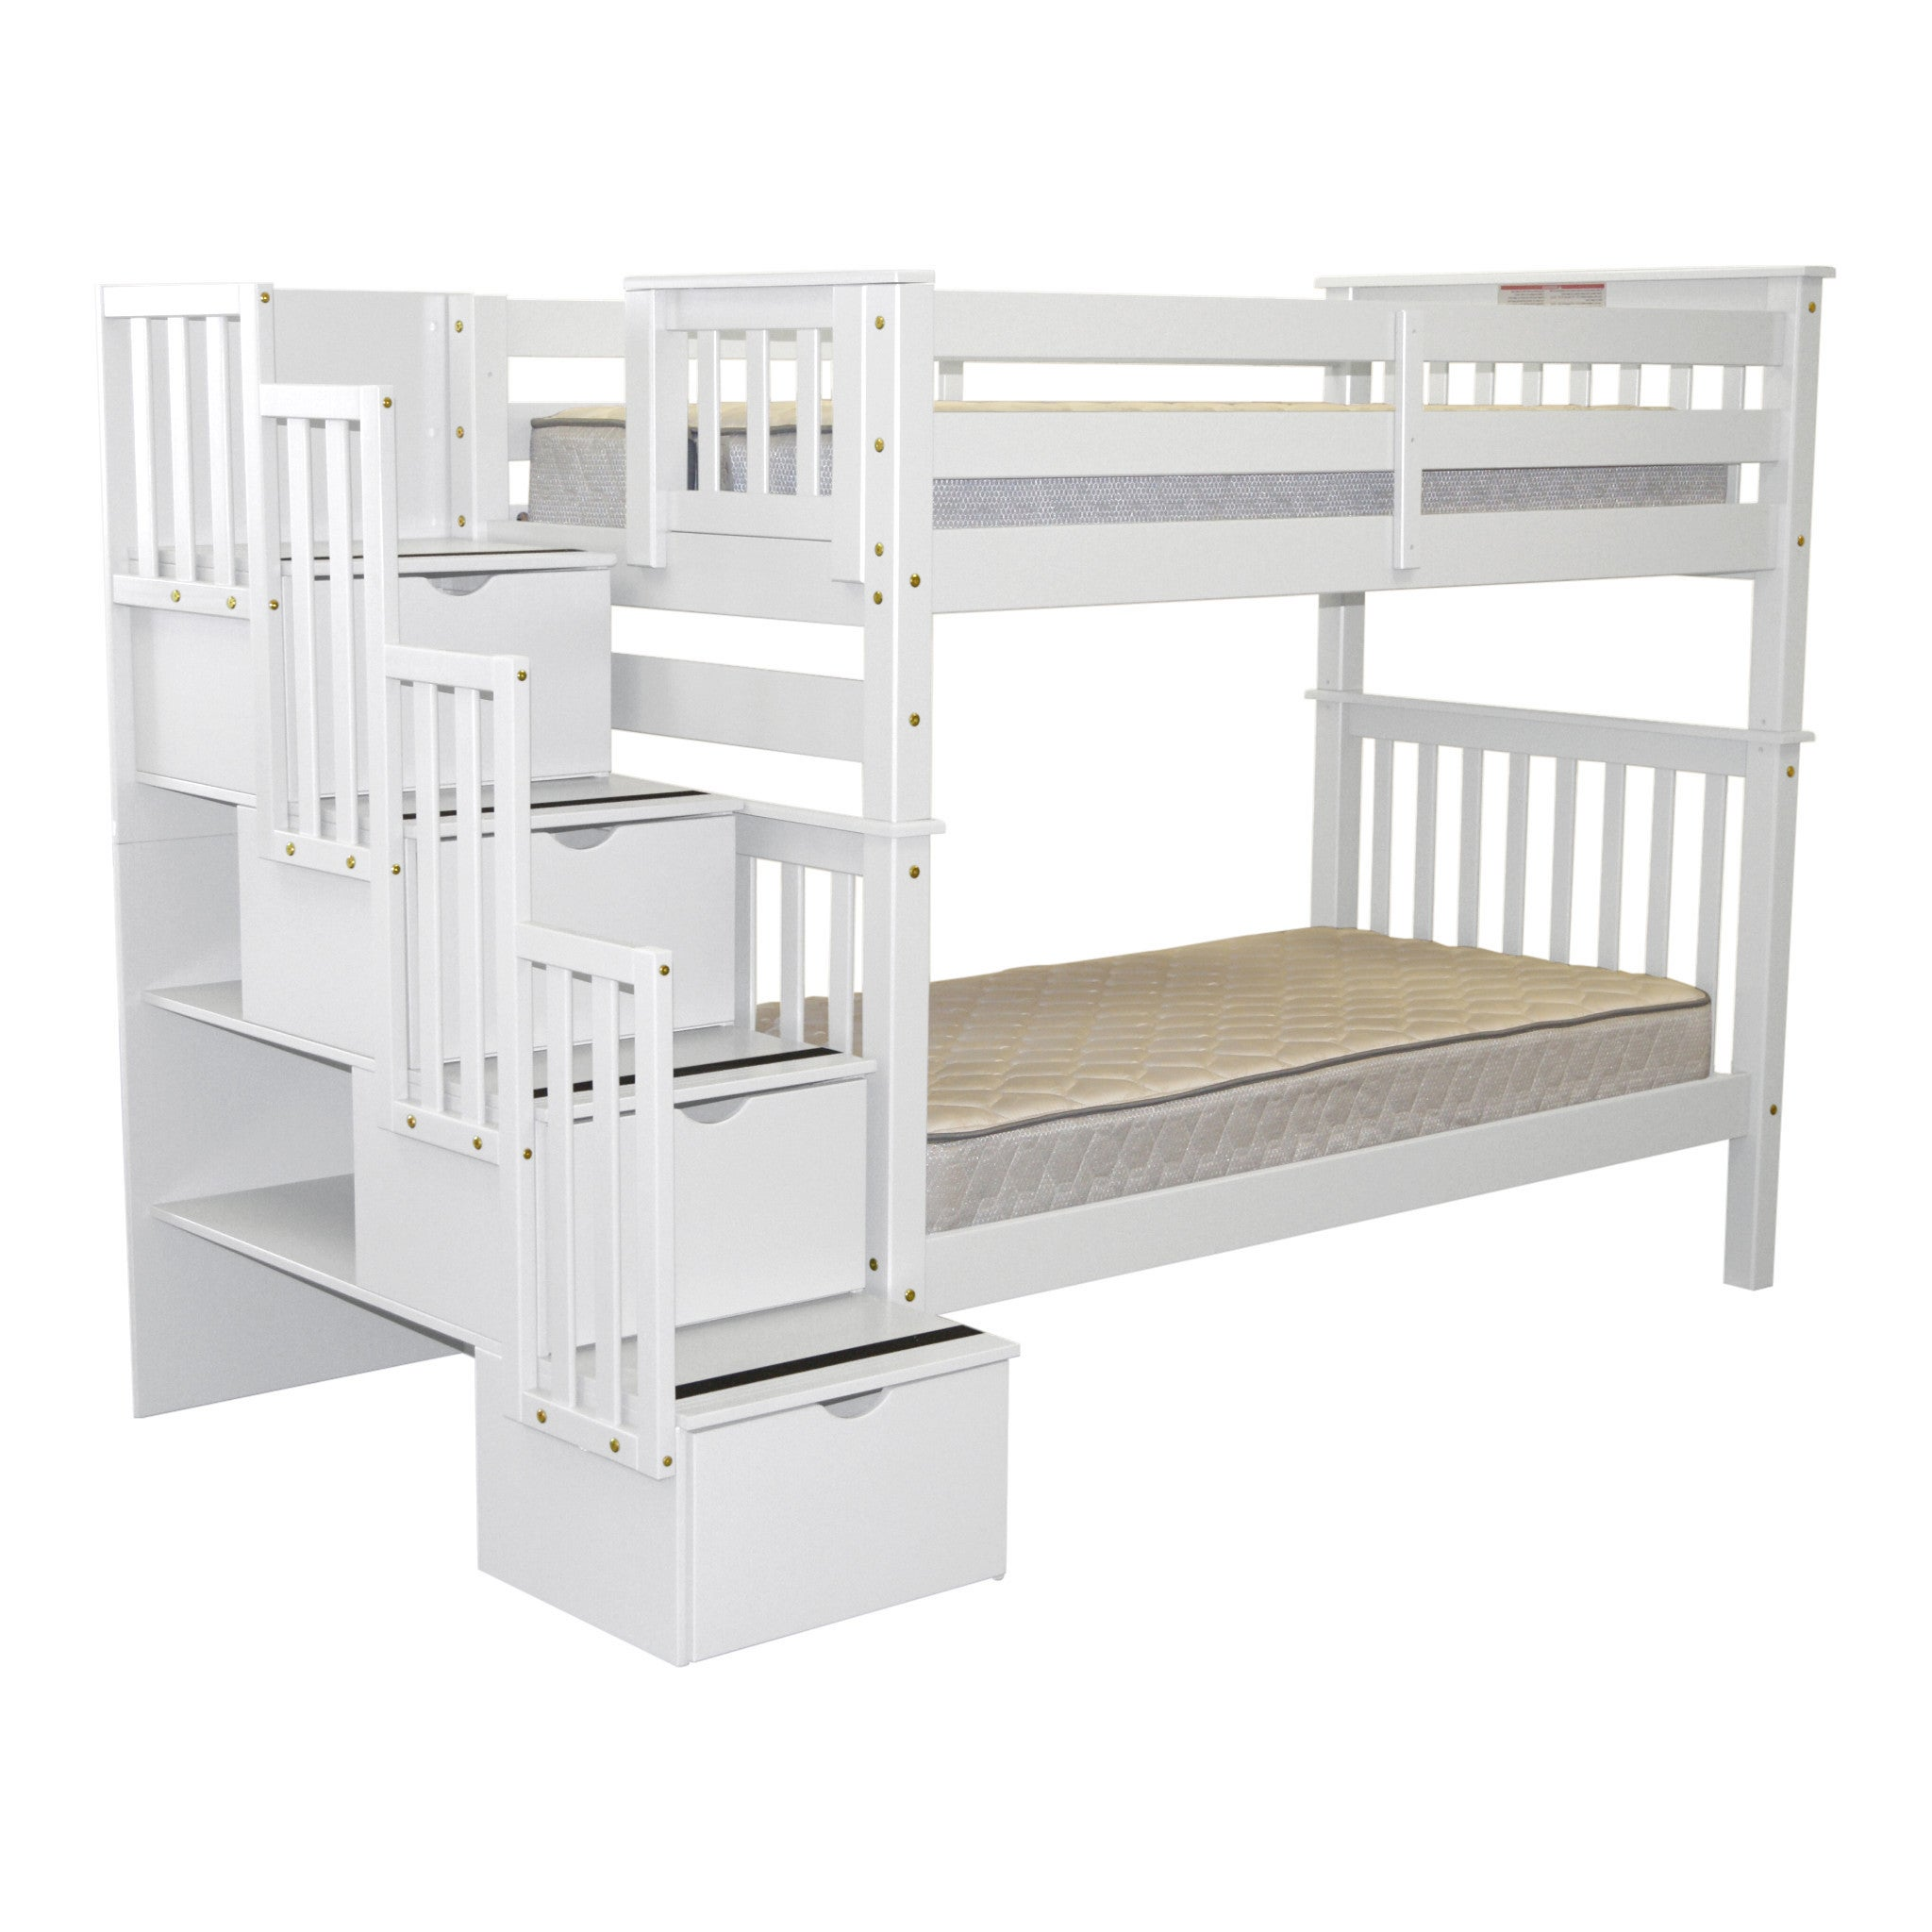 Bedz King Bunk Beds Tall Twin over Twin Stairway with 4 Step White ...